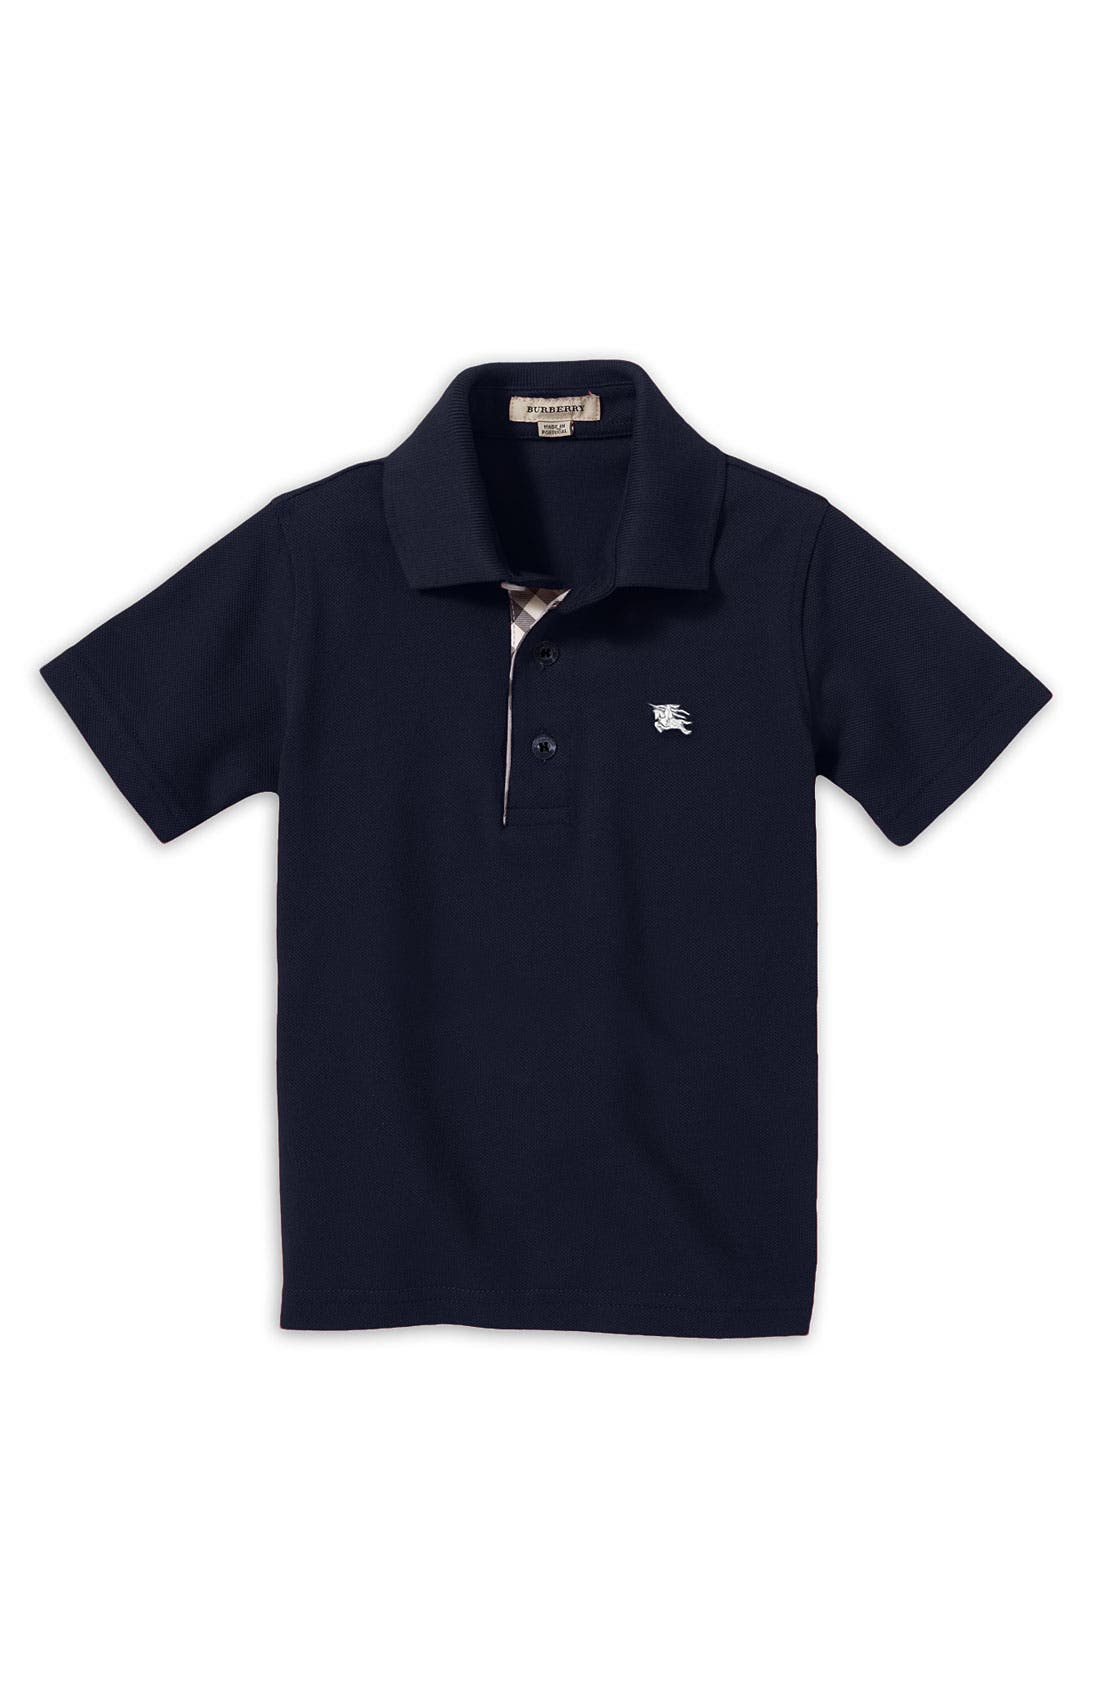 Main Image - Burberry Short Sleeve Polo (Toddler & Little Boys)